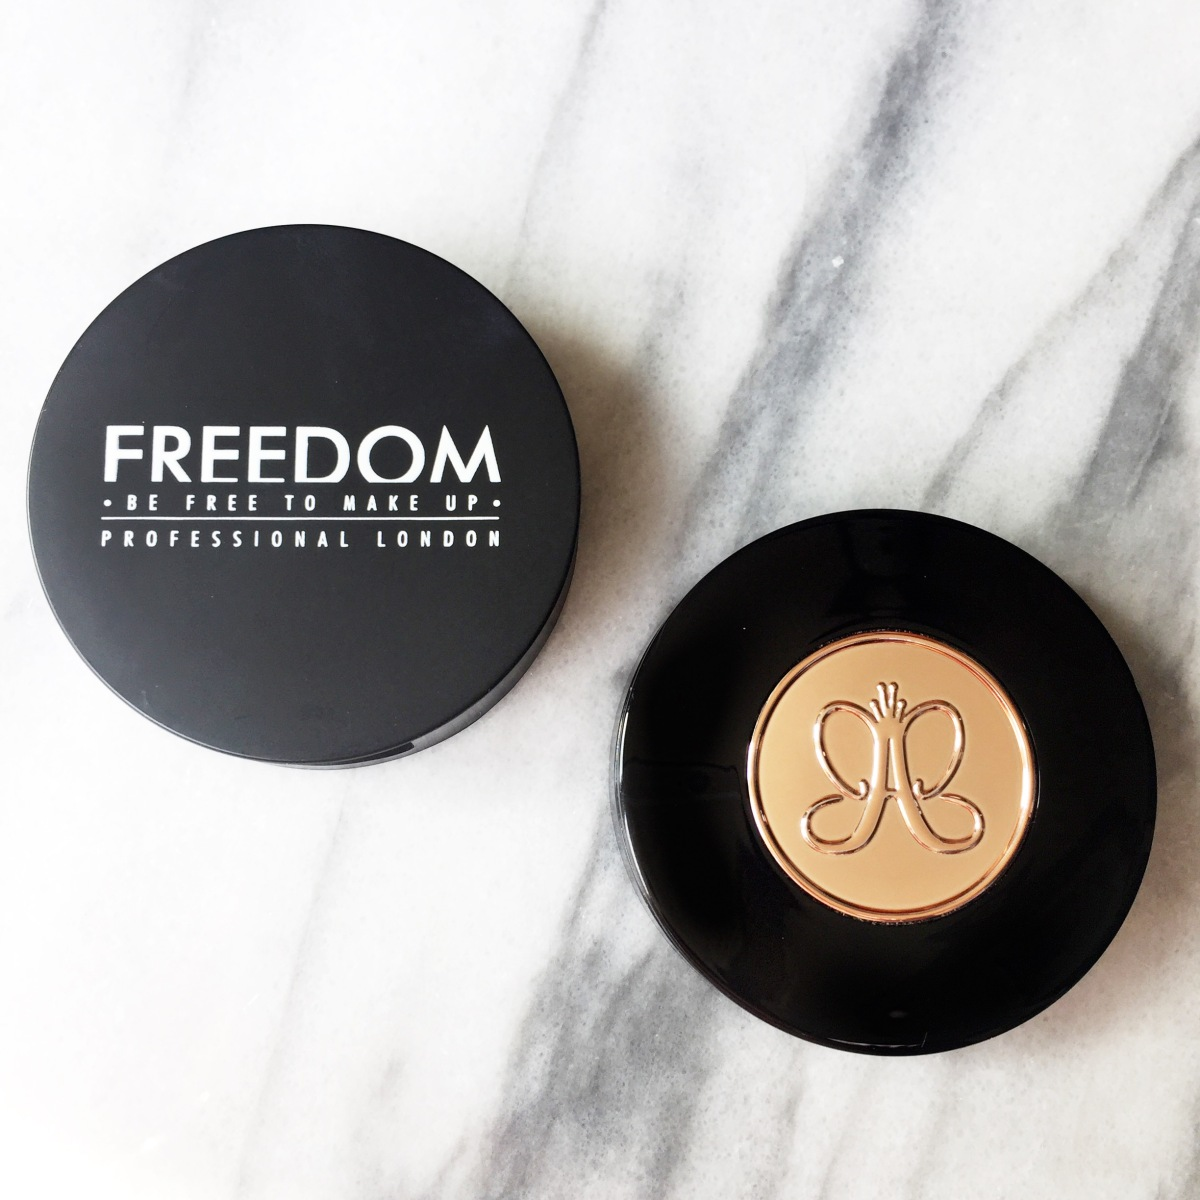 Anastasia Beverly Hills Brow Powder Duo vs Freedom Duo Brow Powder!!